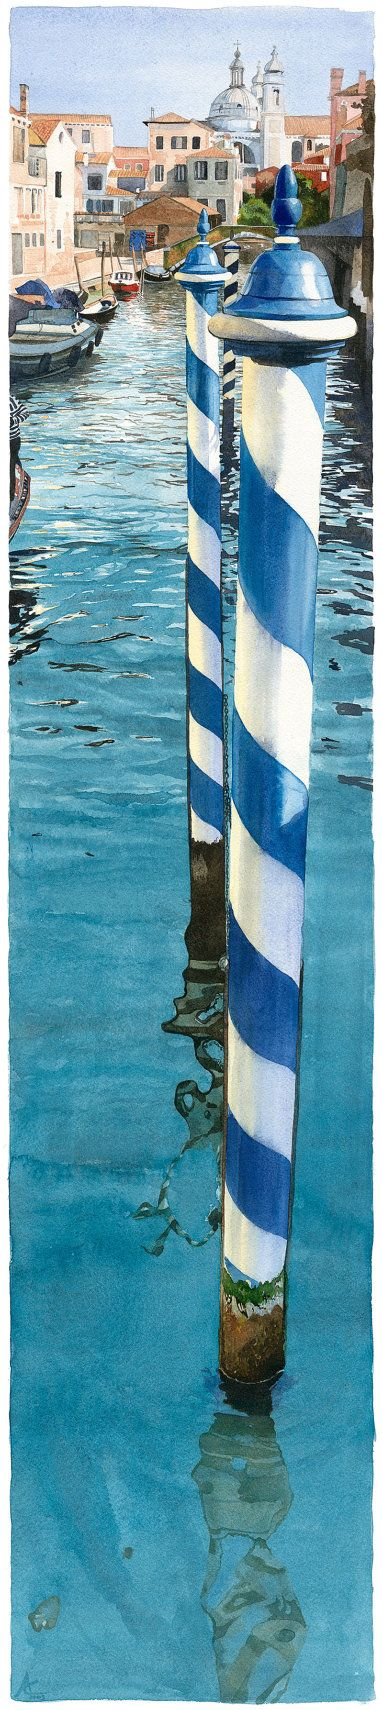 AnneliesClarke - Watercolour Giclée print Venetian striped mooring poles in water, Venice